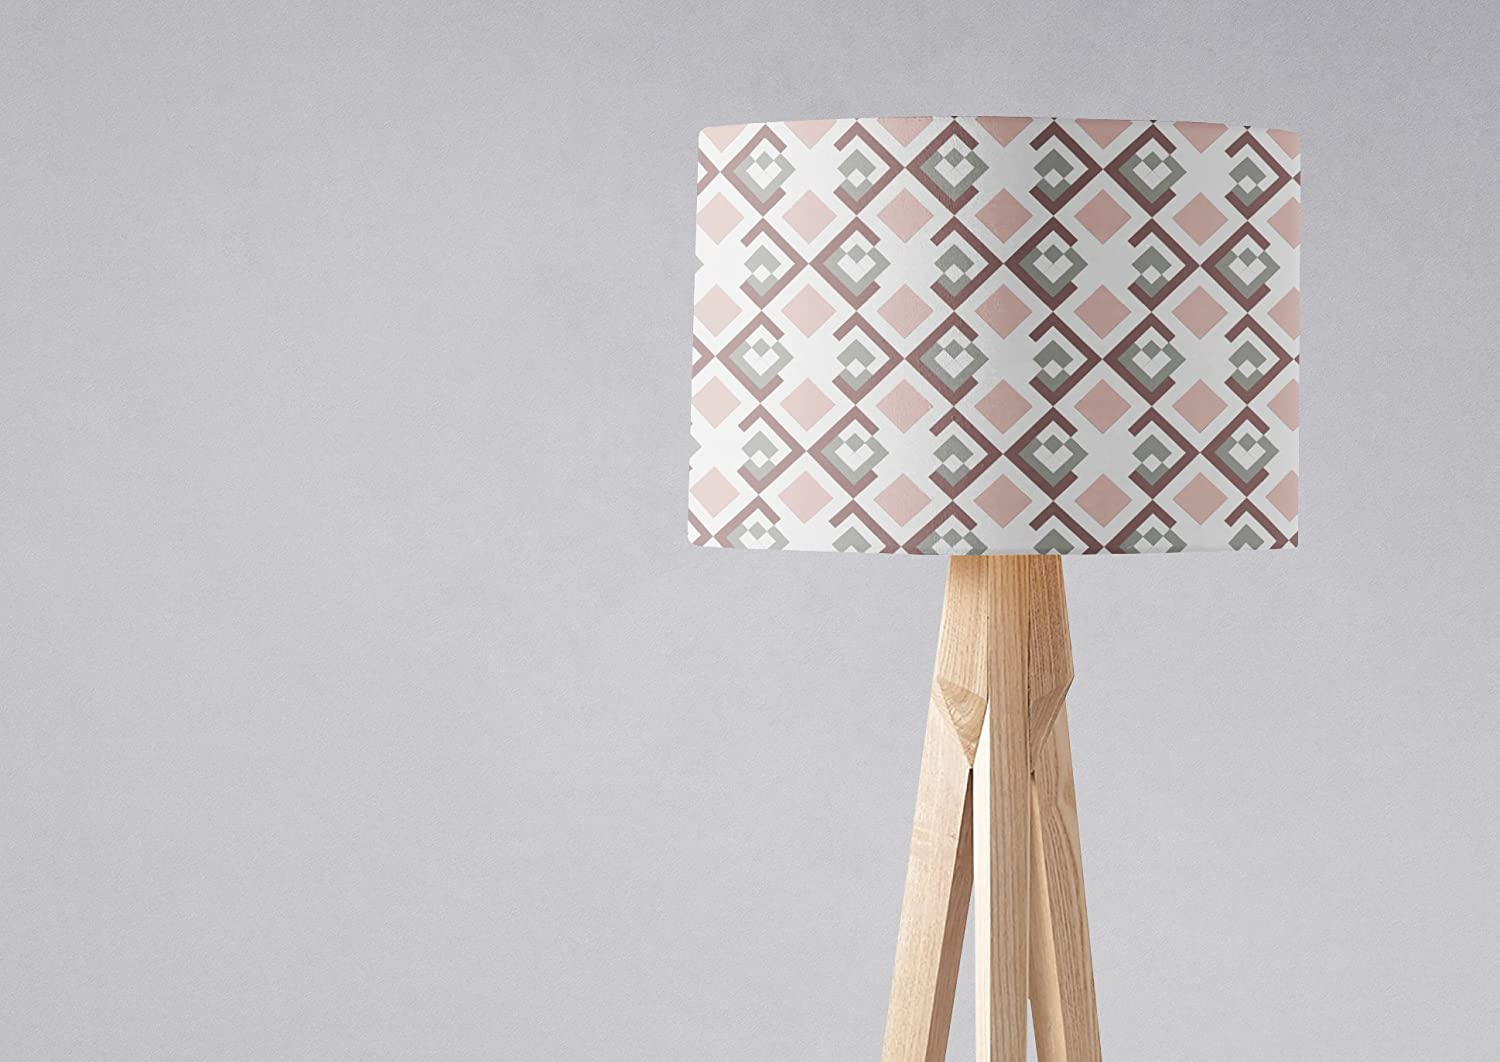 Pink and White Topics on TV Geometric Lampshade Retro Shade Ceiling Light 70% OFF Outlet or